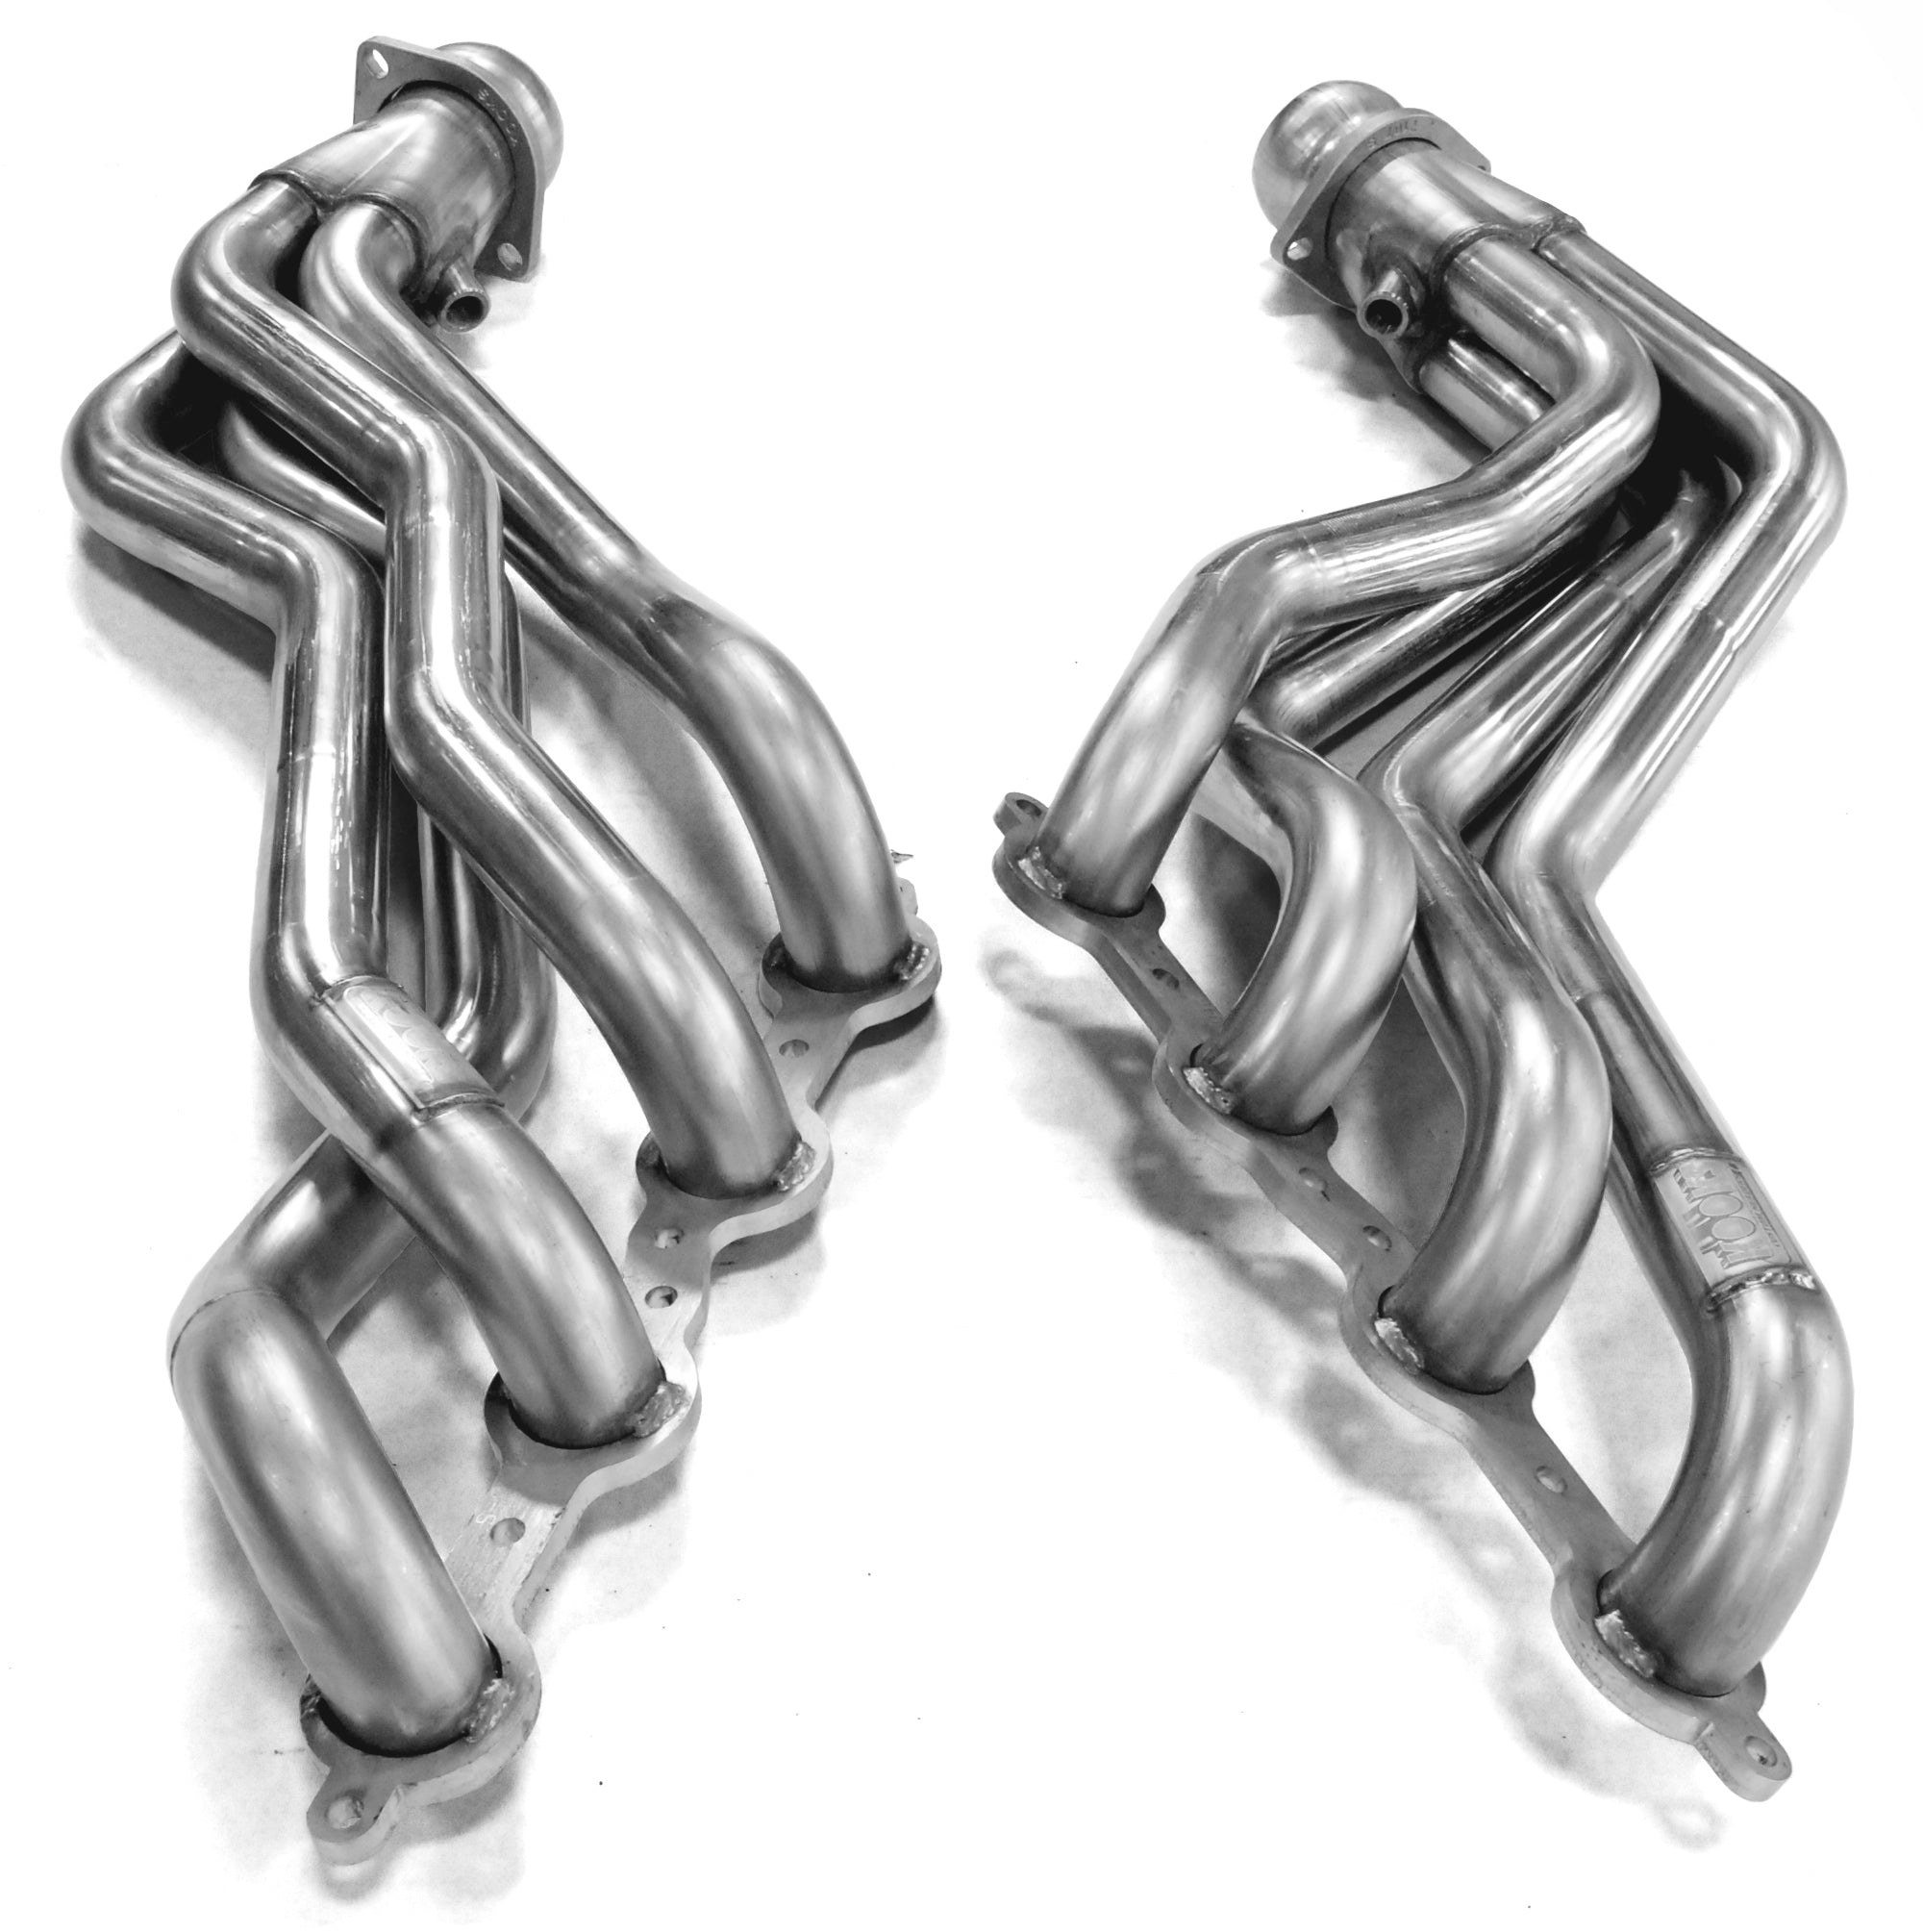 "2006-2009 Chevy Trailblazer SS 1 7/8"" x 3"" Headers"